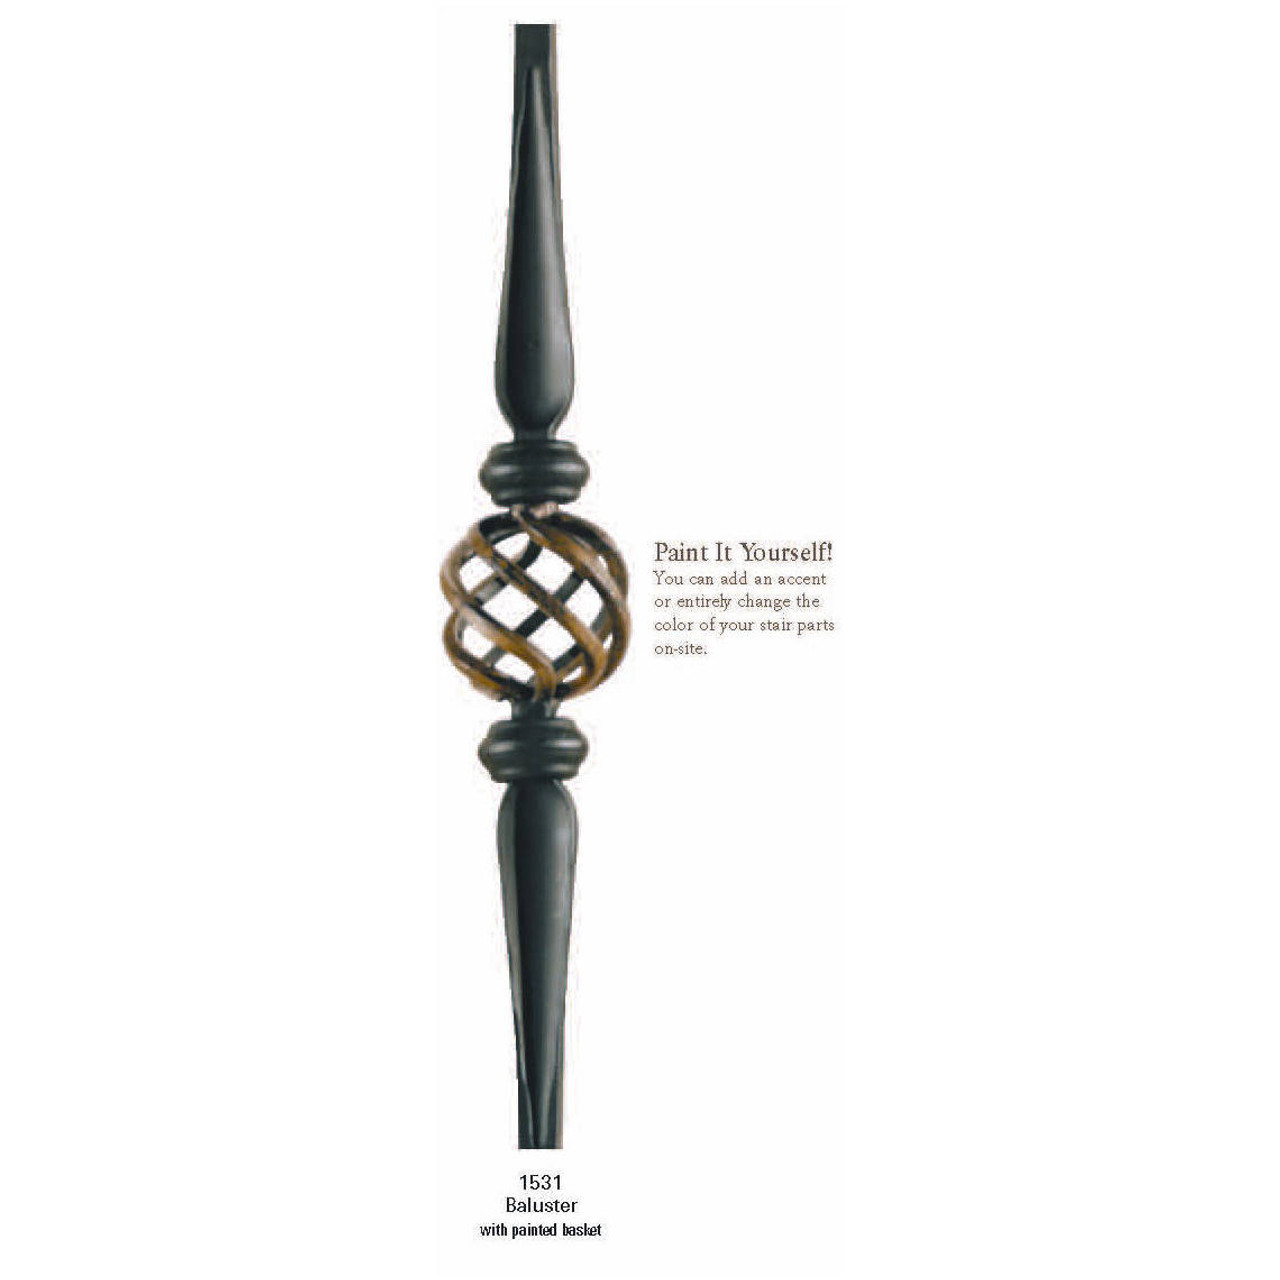 3531 Hollow Hammered Spoon with Basket Iron Baluster Zoomed Image